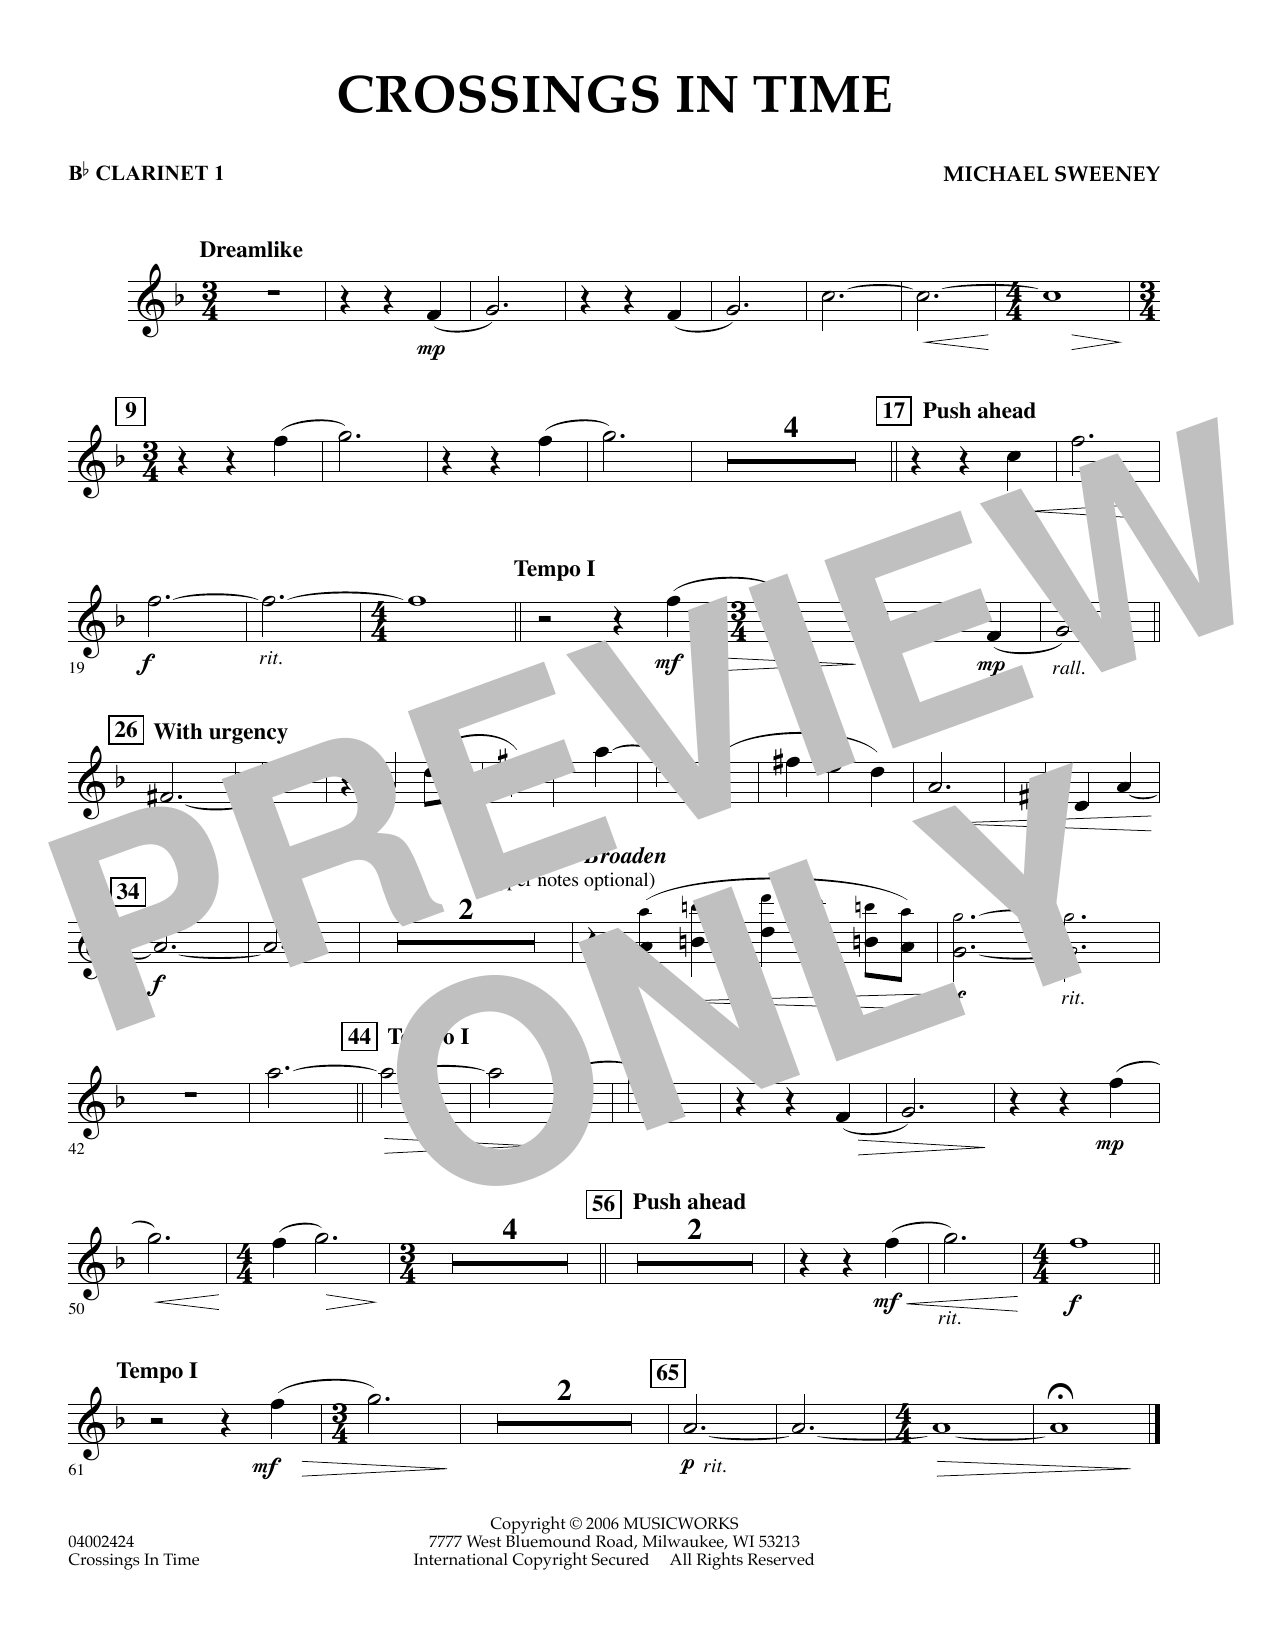 Michael Sweeney Crossings In Time - Bb Clarinet 1 sheet music preview music notes and score for Concert Band including 1 page(s)